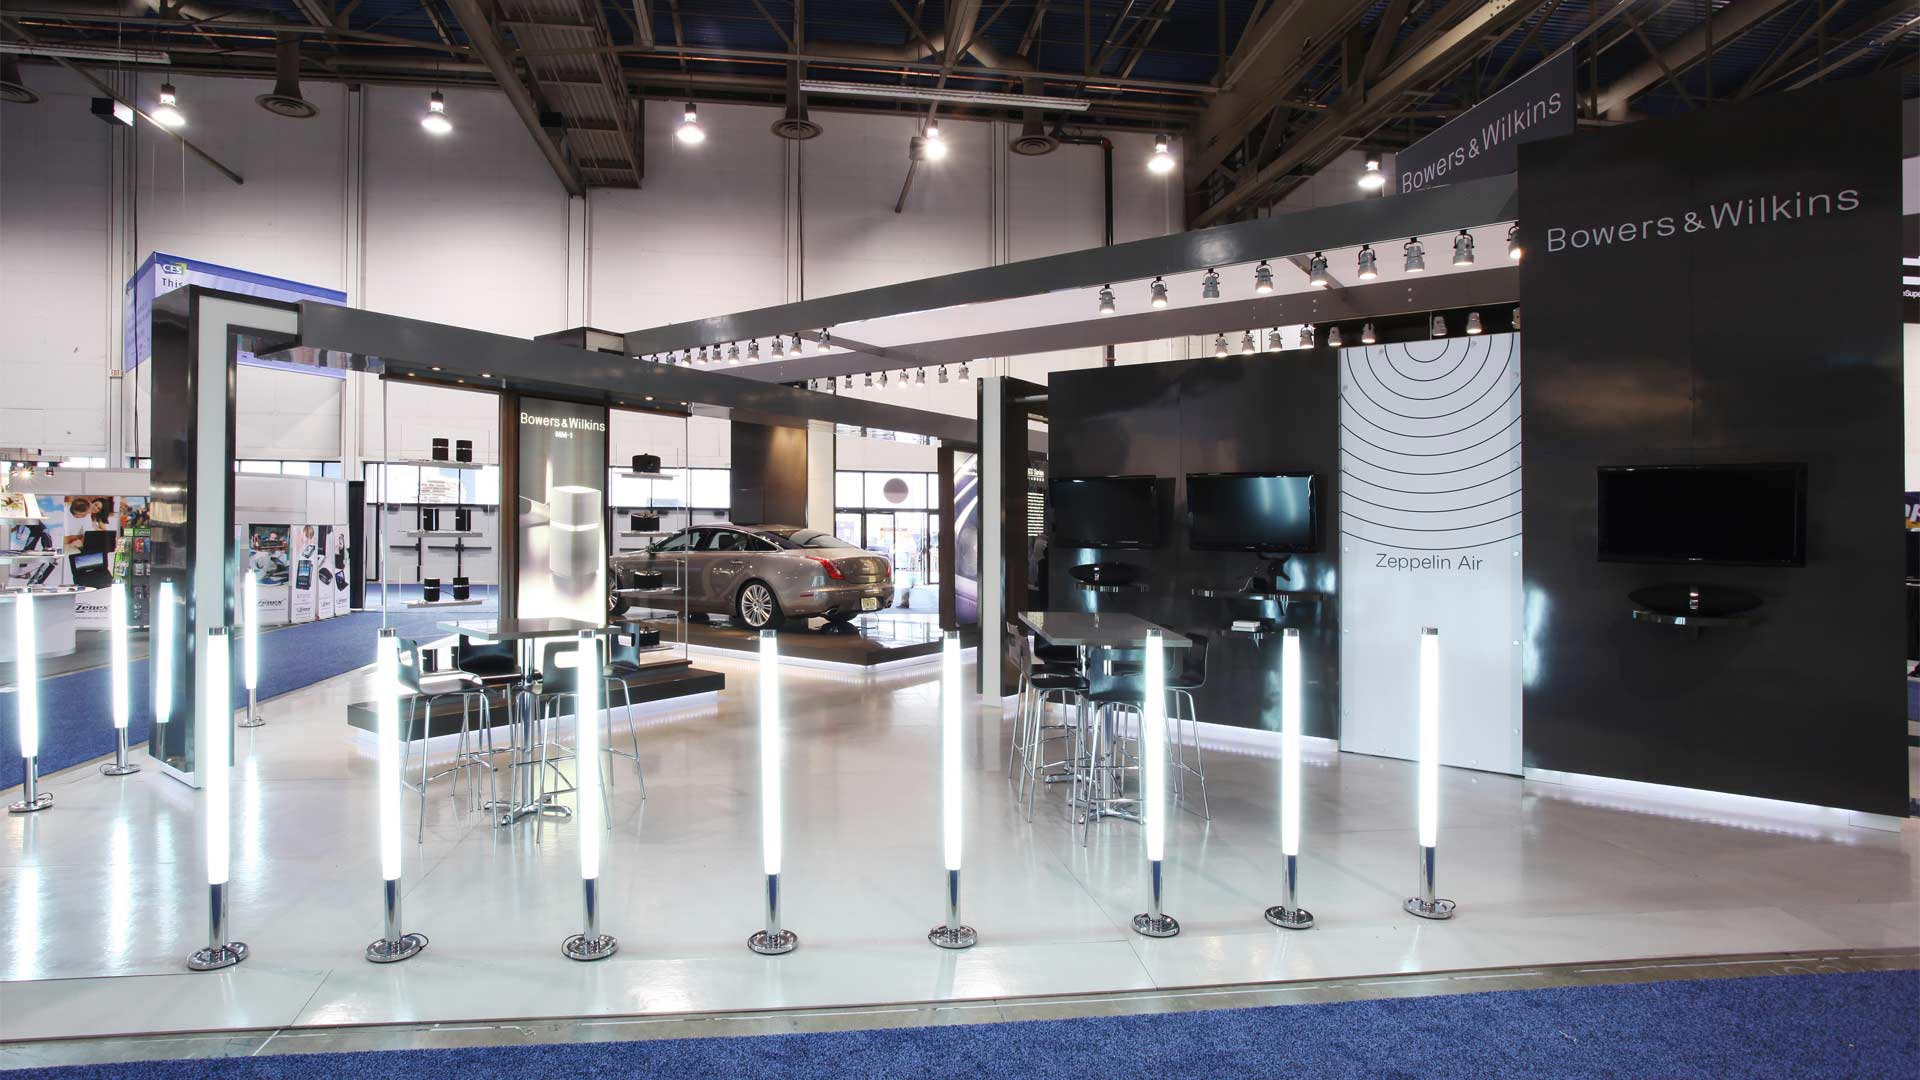 Types Of Exhibition Stand Design : Bowers wilkins ces las vegas thomas manss company